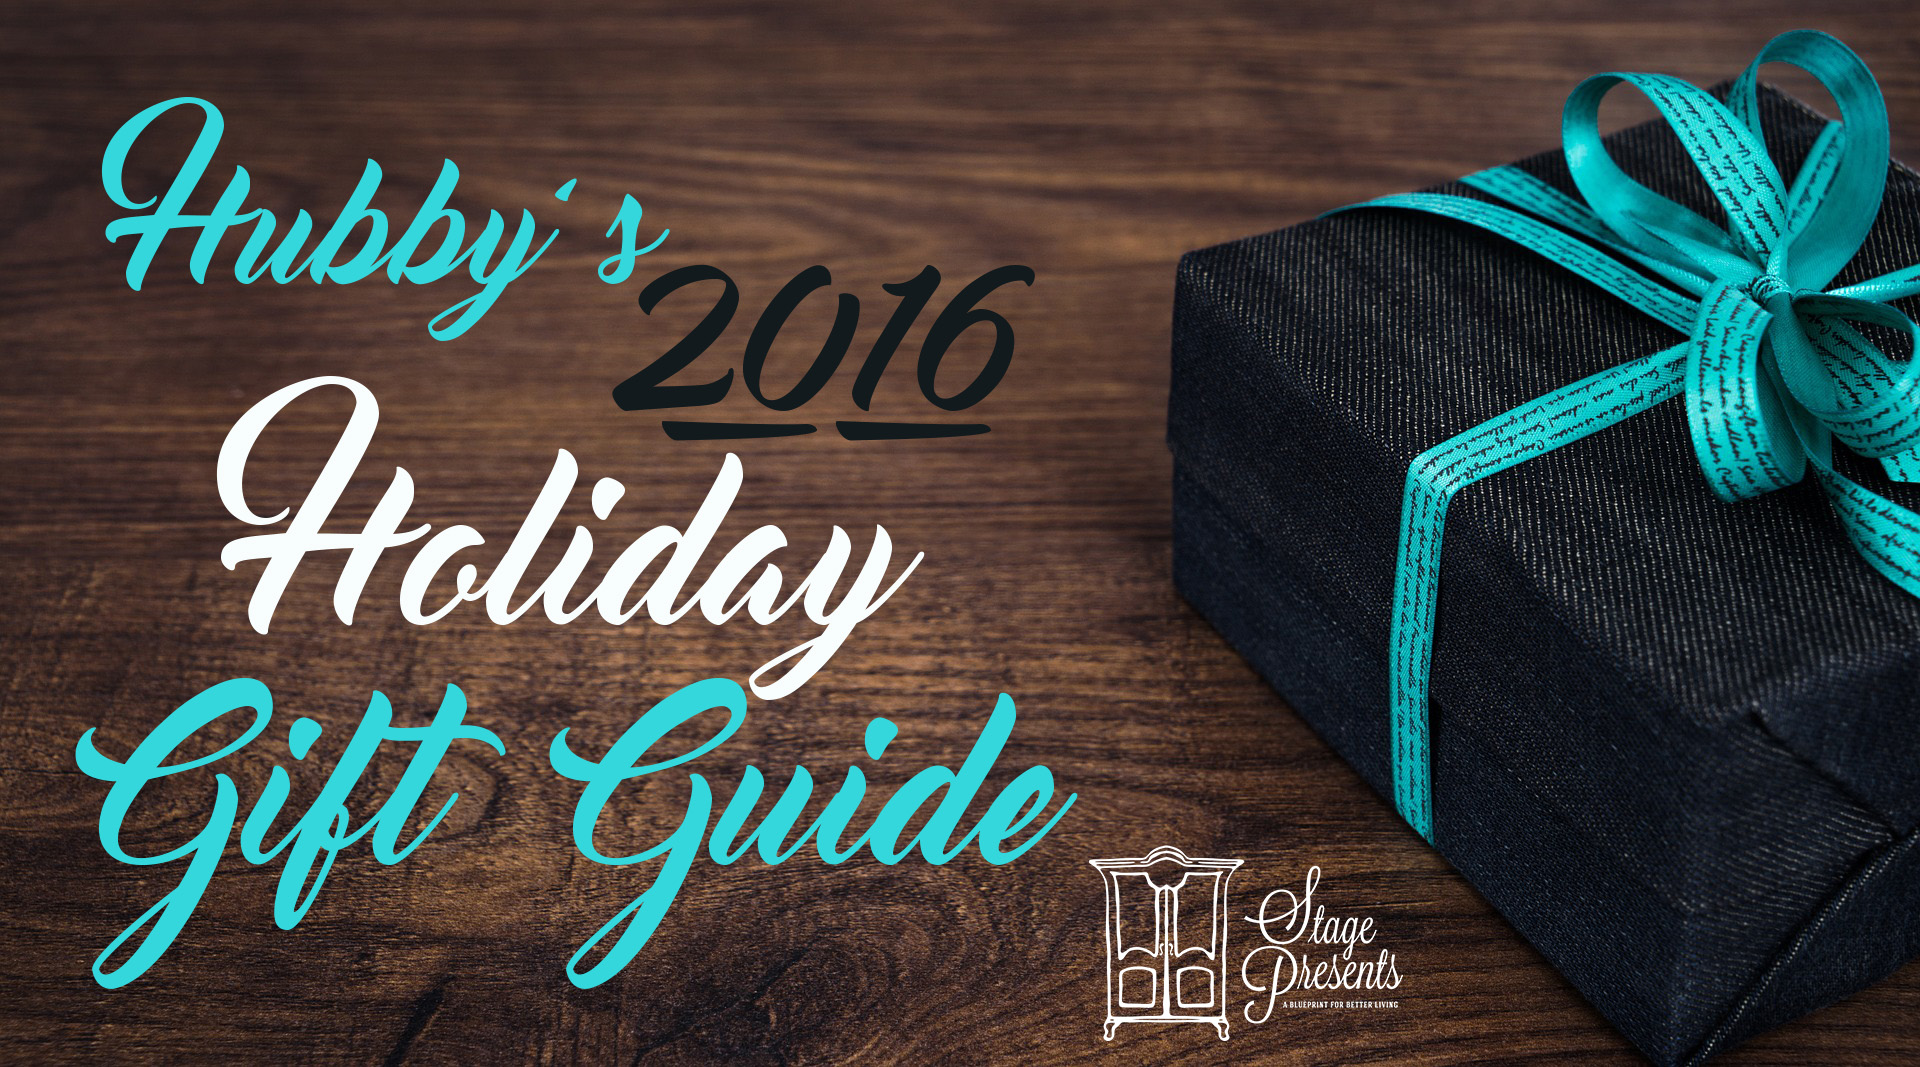 hubby-2016-holiday-gift-guide